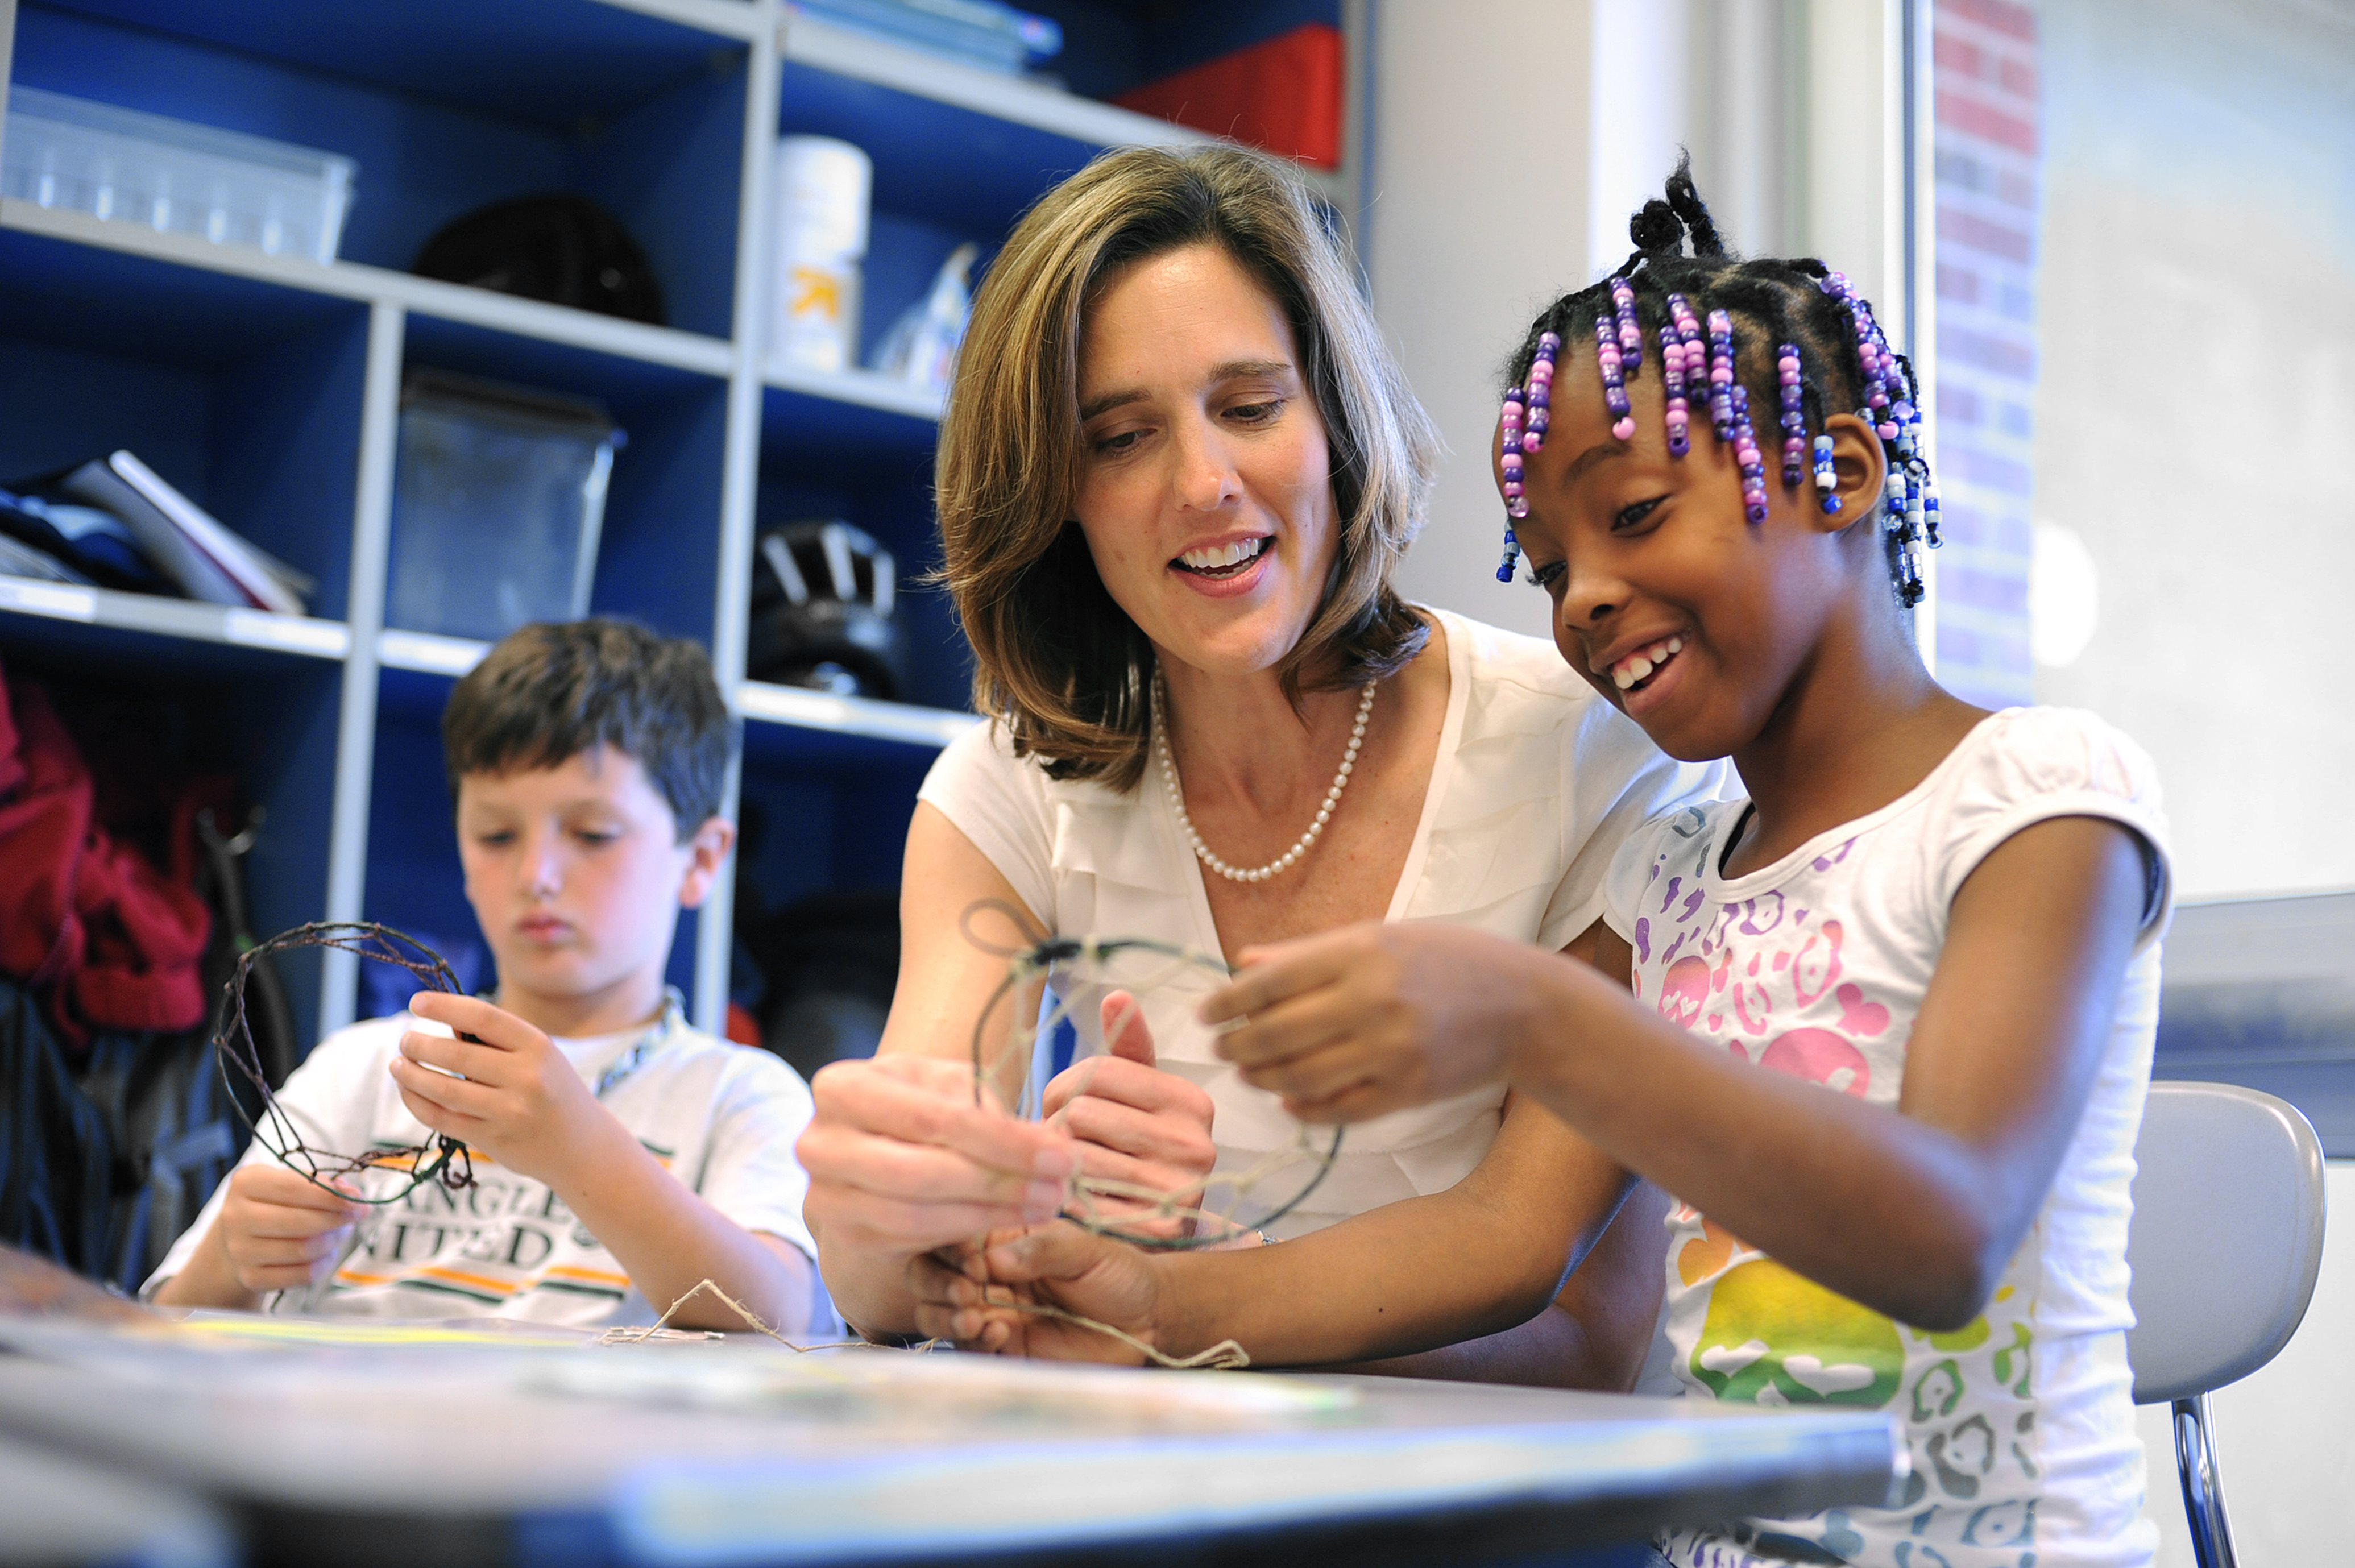 Kim Mellor, M.Ed. alumnus, teaches second grade at McDougle Elementary in Chapel Hill.